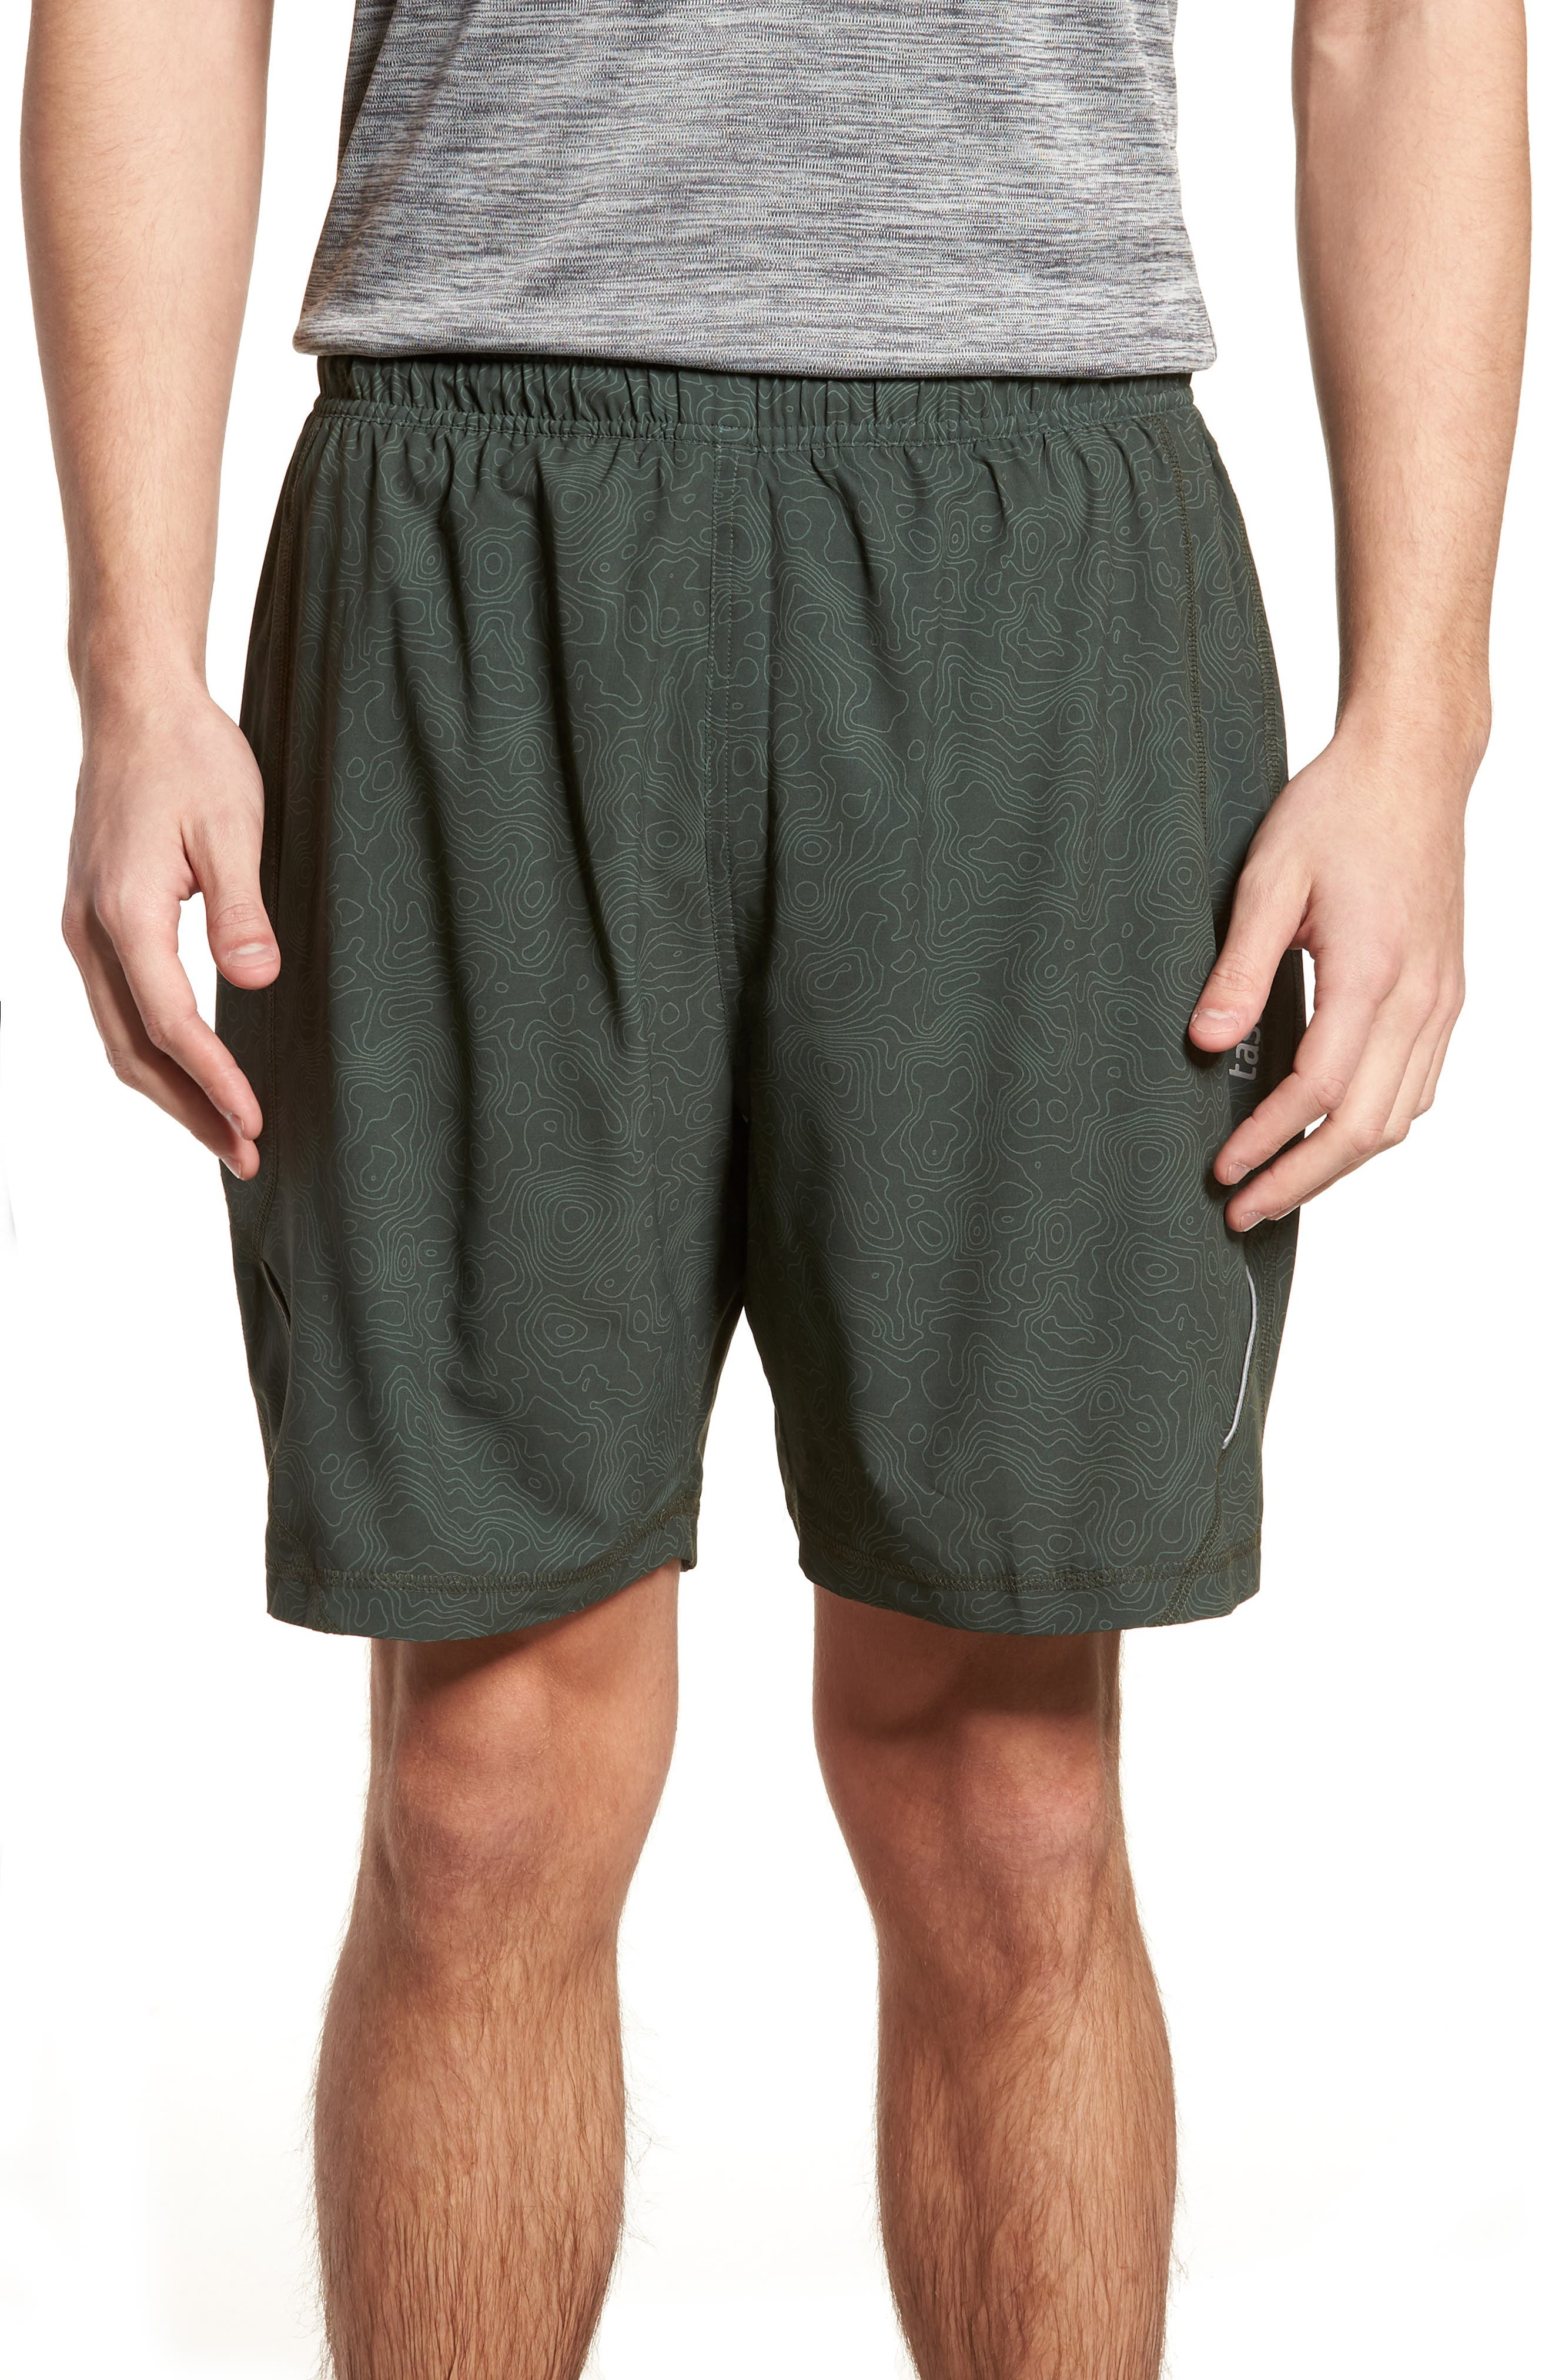 Propulsion Athletic Shorts,                         Main,                         color, Topography